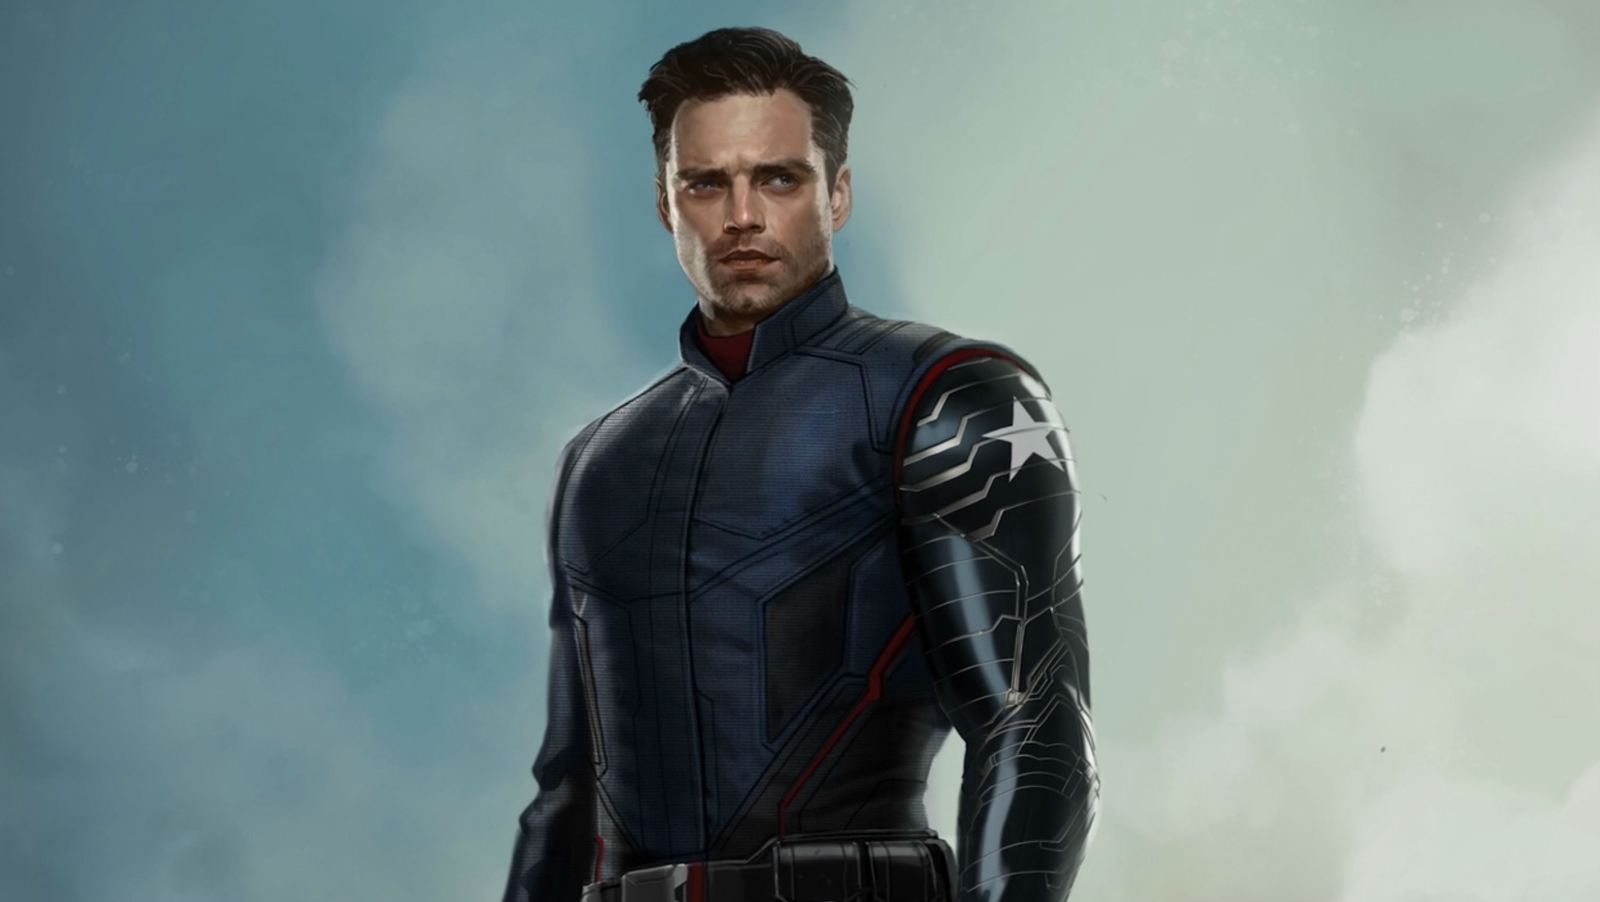 New suit for Winter Soldier